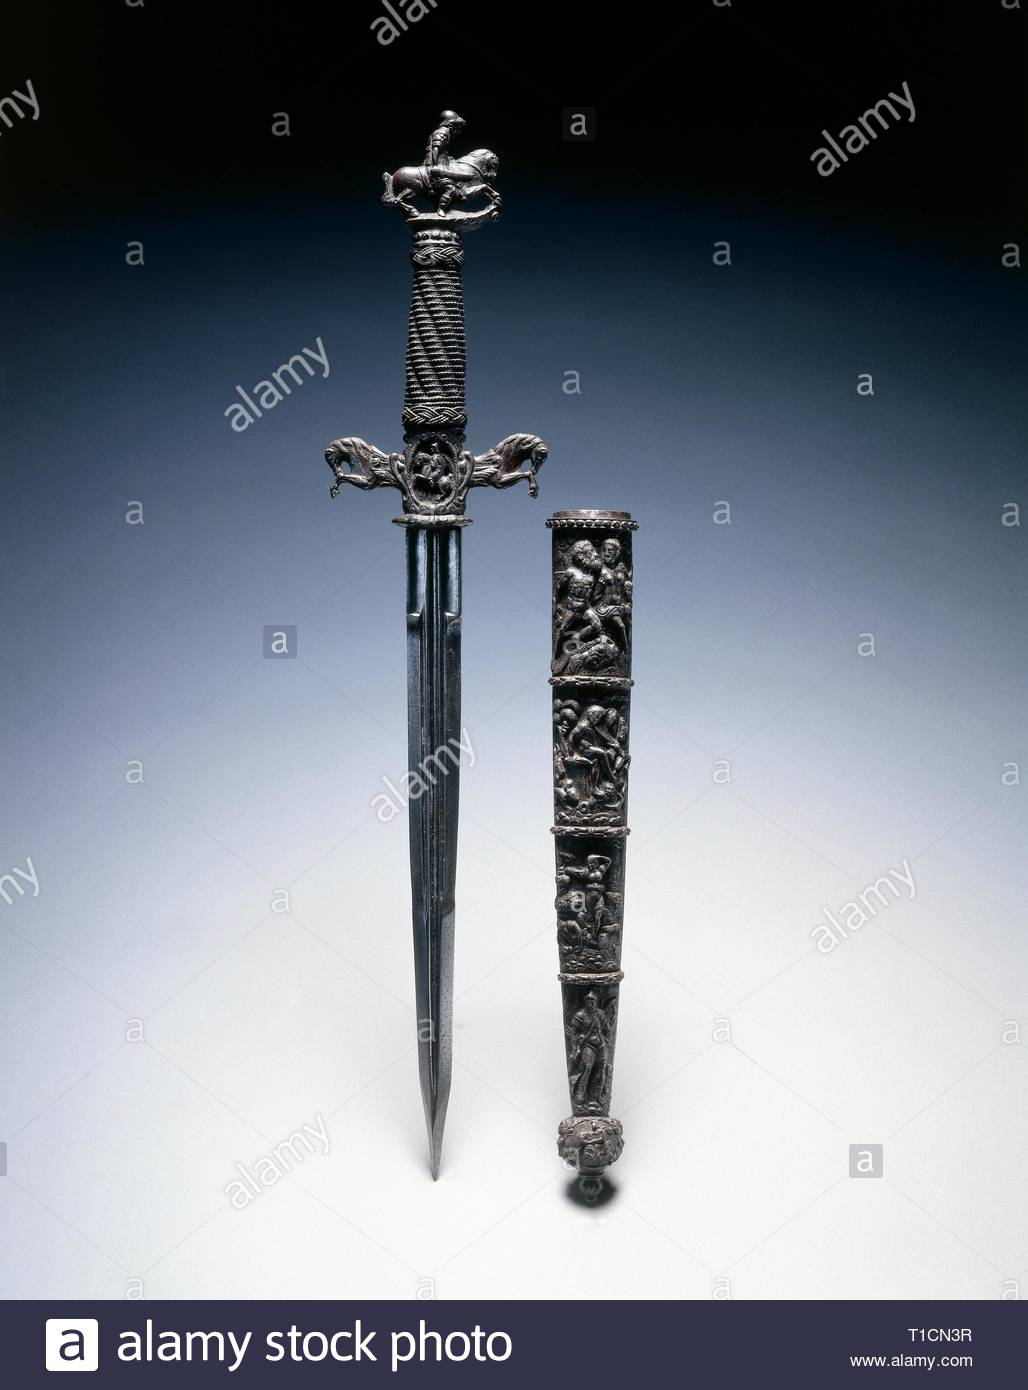 Dagger, 1600s (1500s blade). Switzerland and/or France, 17th century (16th century blade). Steel and wire; chiseled quillions and pommel; overall: 44.3 cm (17 7/16 in.); quillions: 9.2 cm (3 5/8 in.). - Stock Image